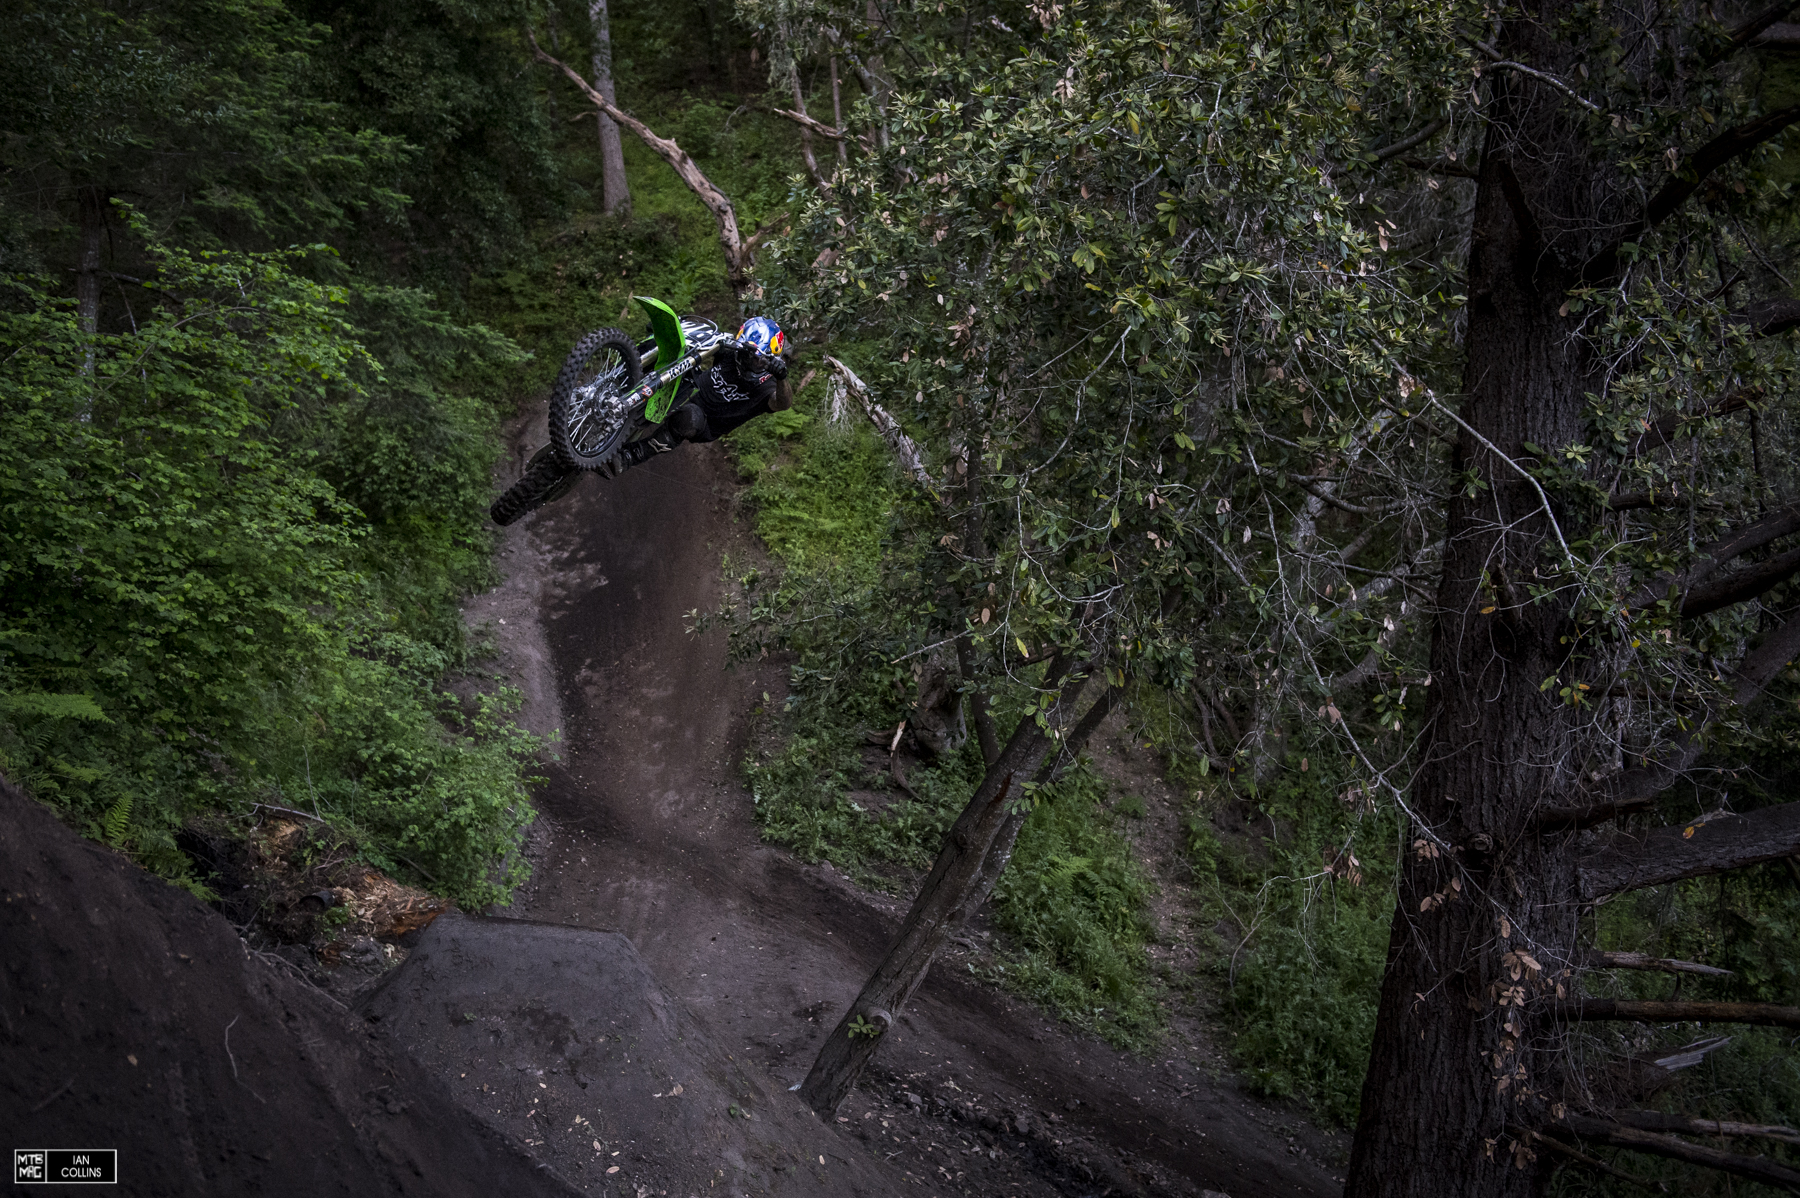 Andreu Lacondaguy. On a moto. Just think about that.